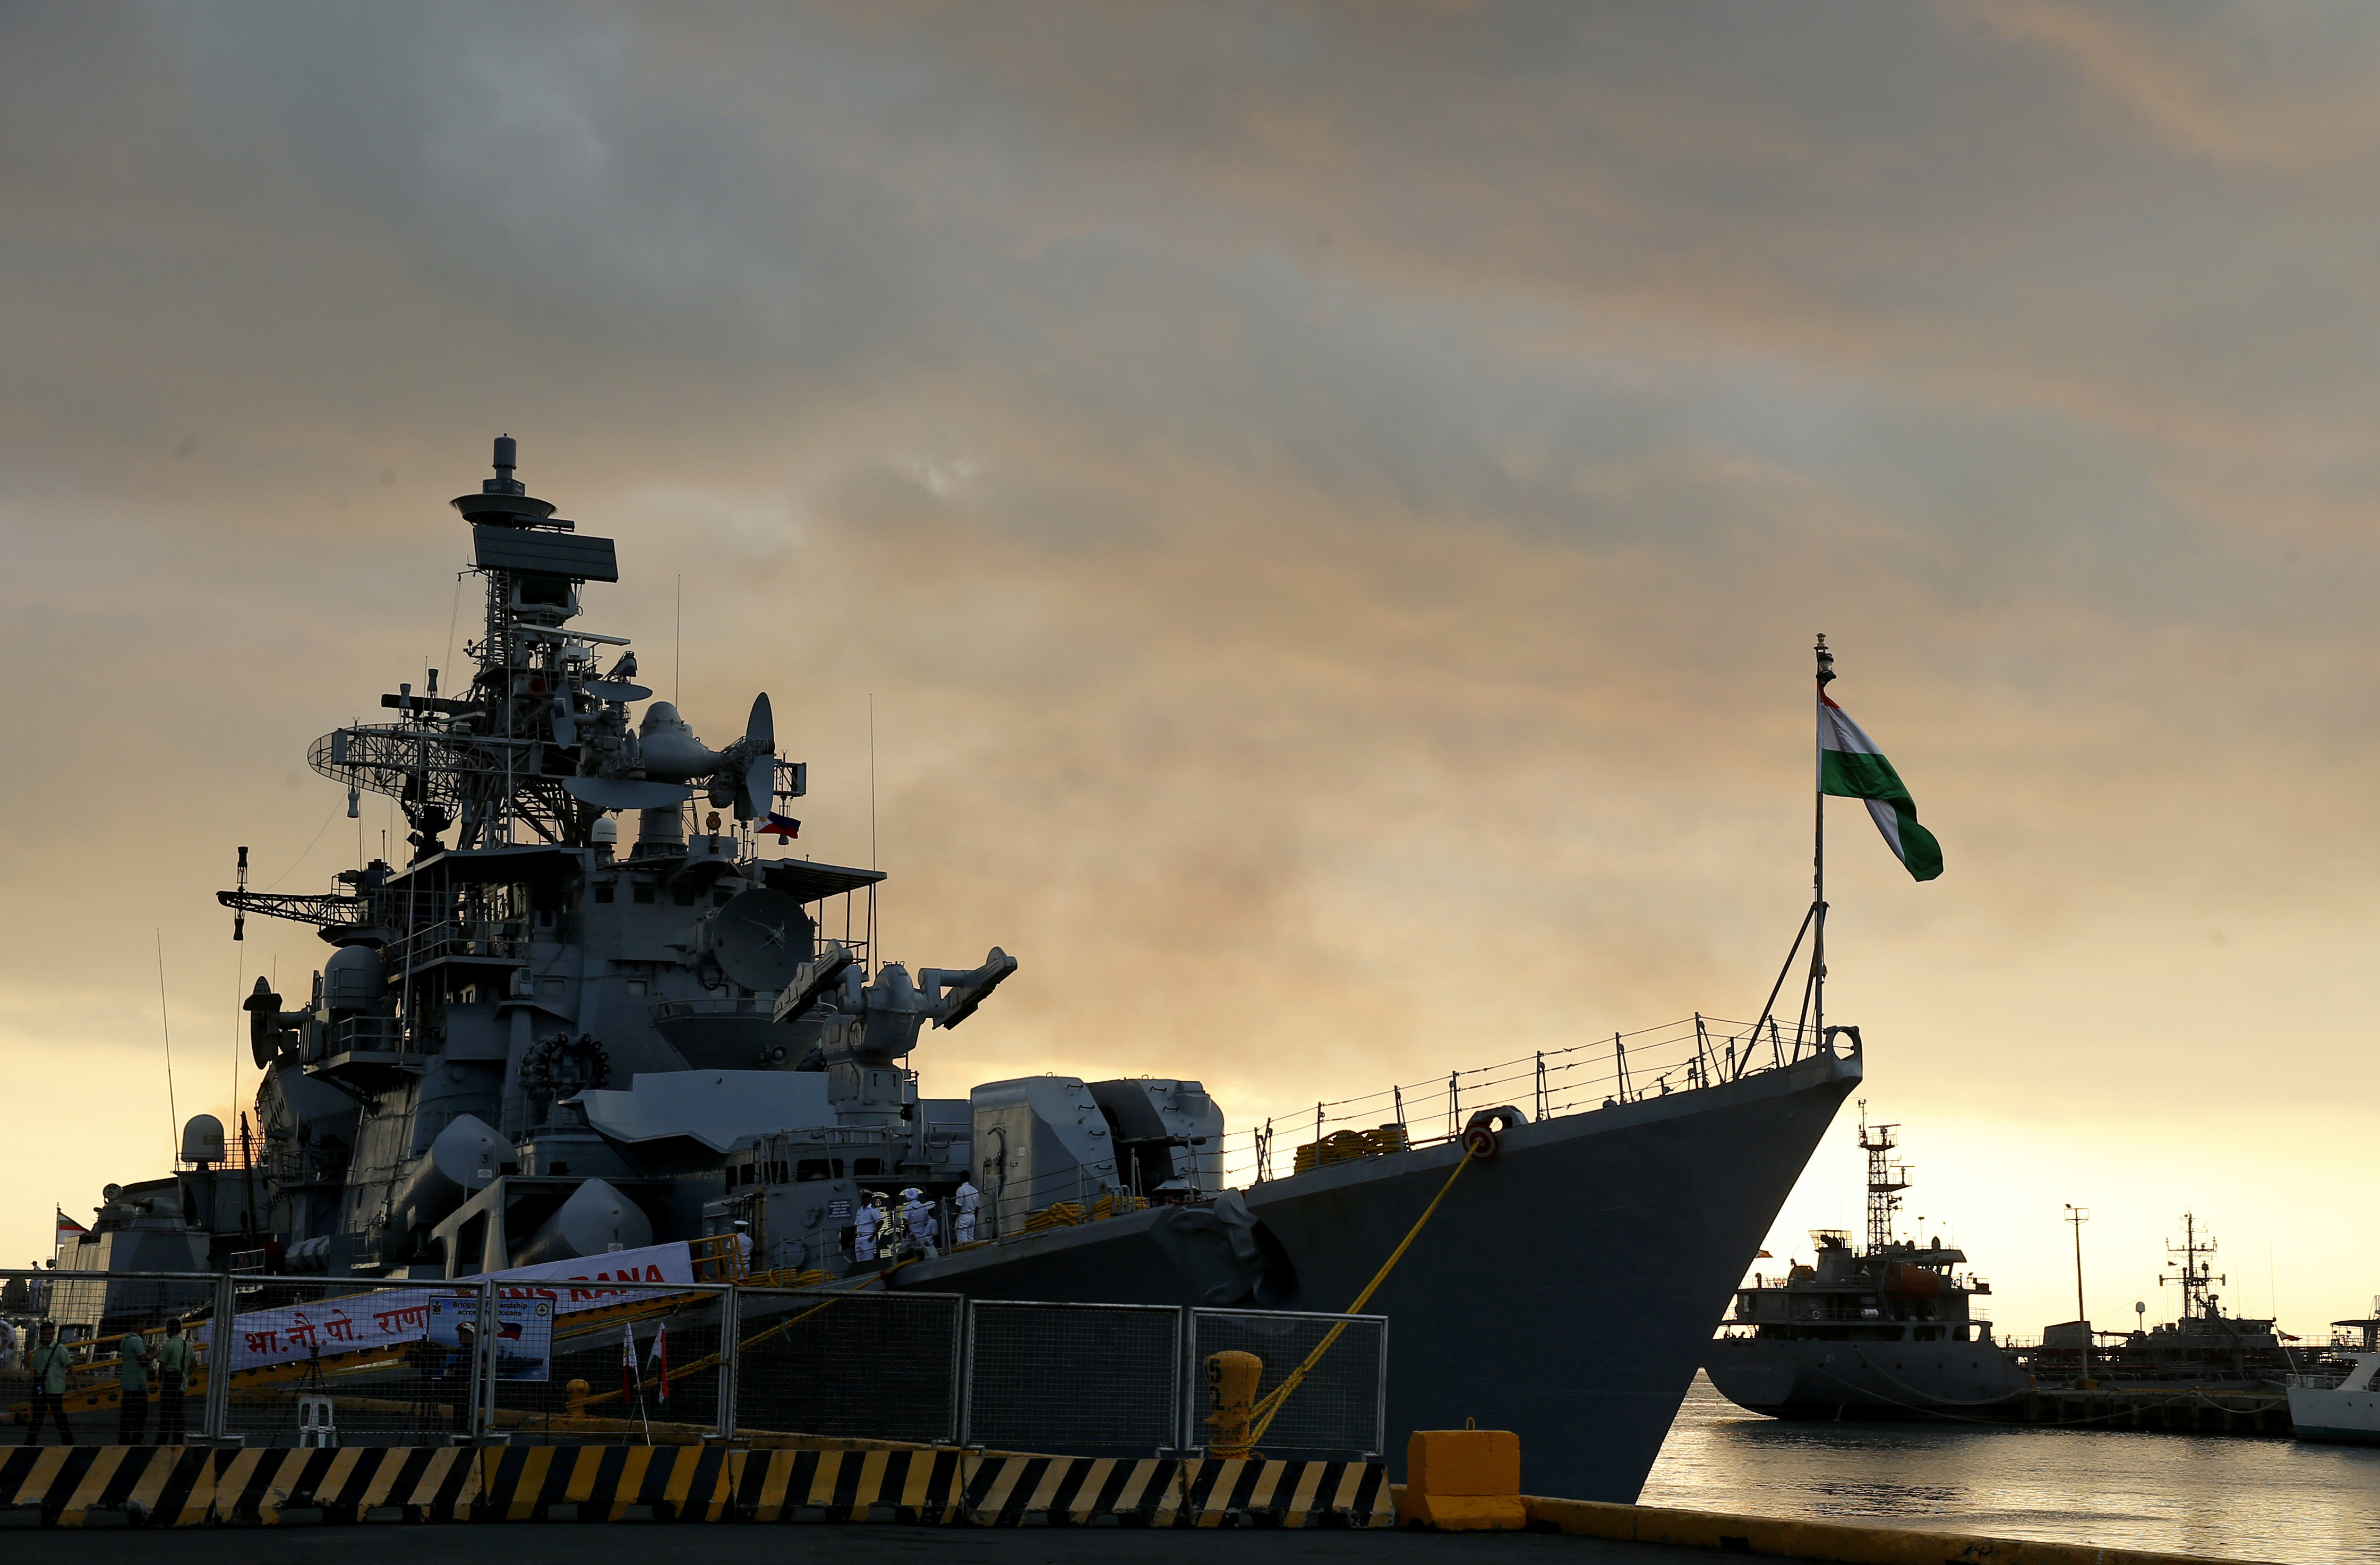 Indian Naval Ship INS Rana, a destroyer prepares to dock at Manila's South Harbor for a four-day port call at sunset Tuesday, Oct. 23, 2018 in Manila, Philippines - AP